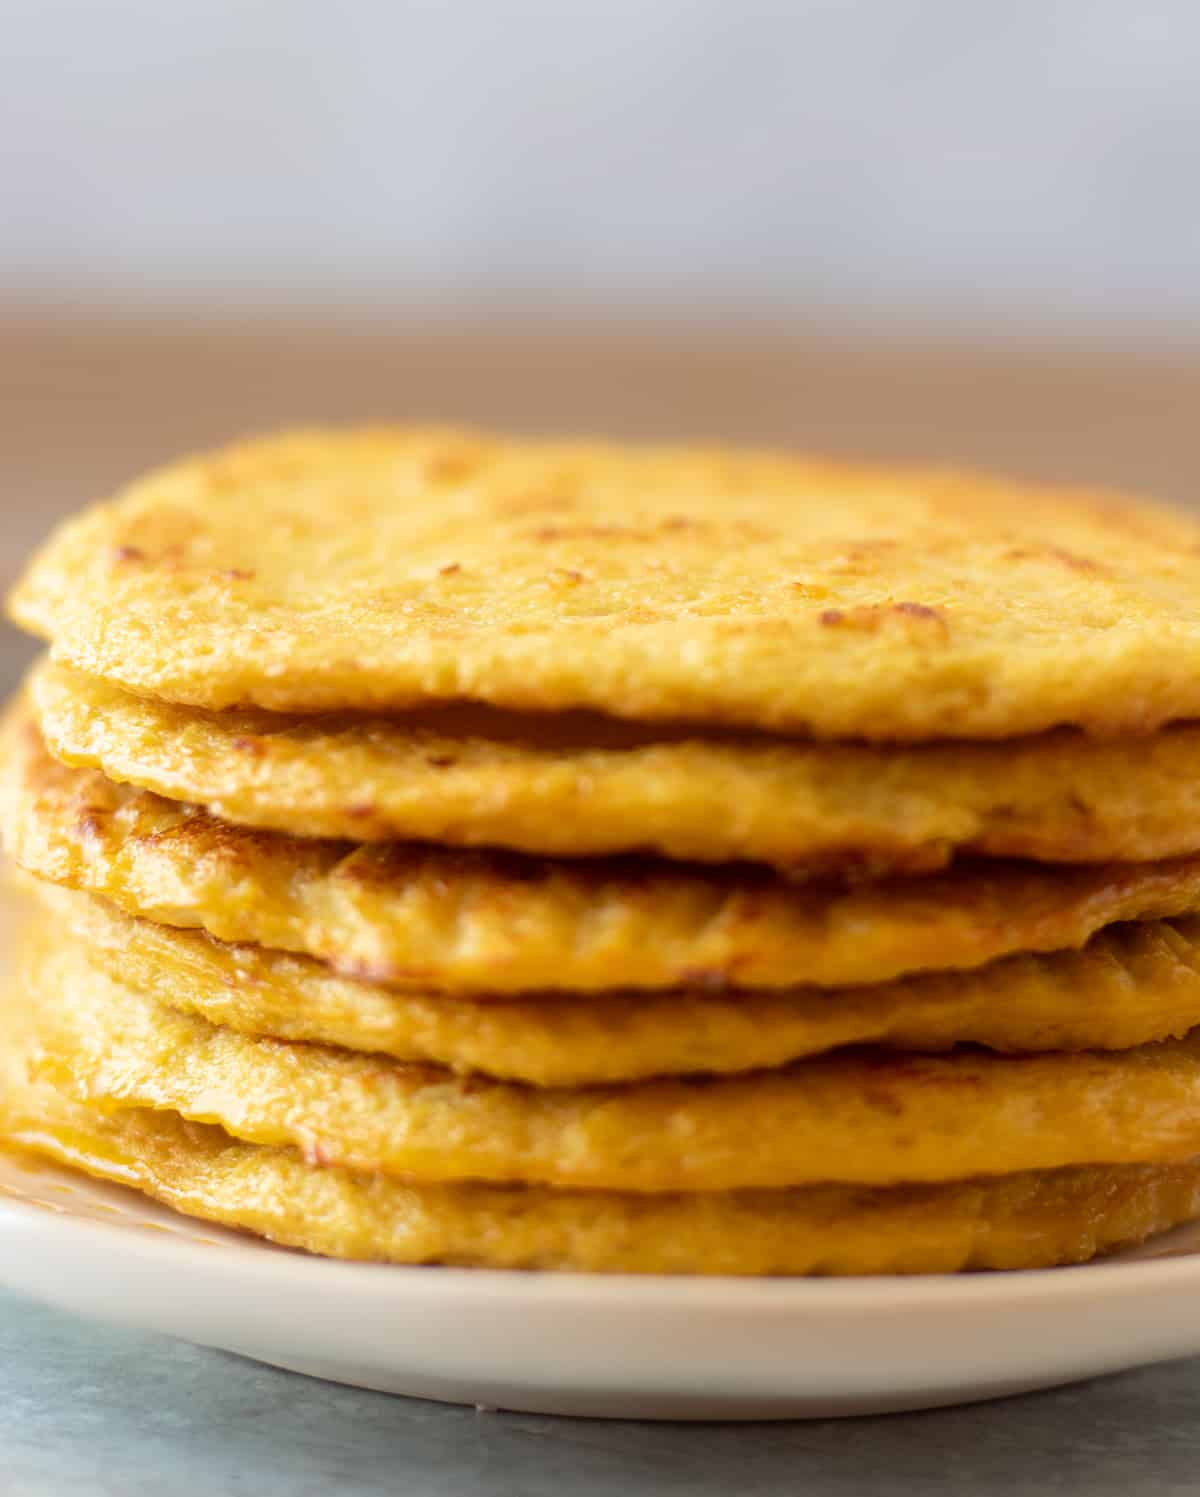 cauliflower tortillas stacked on a white plate with yellow trim